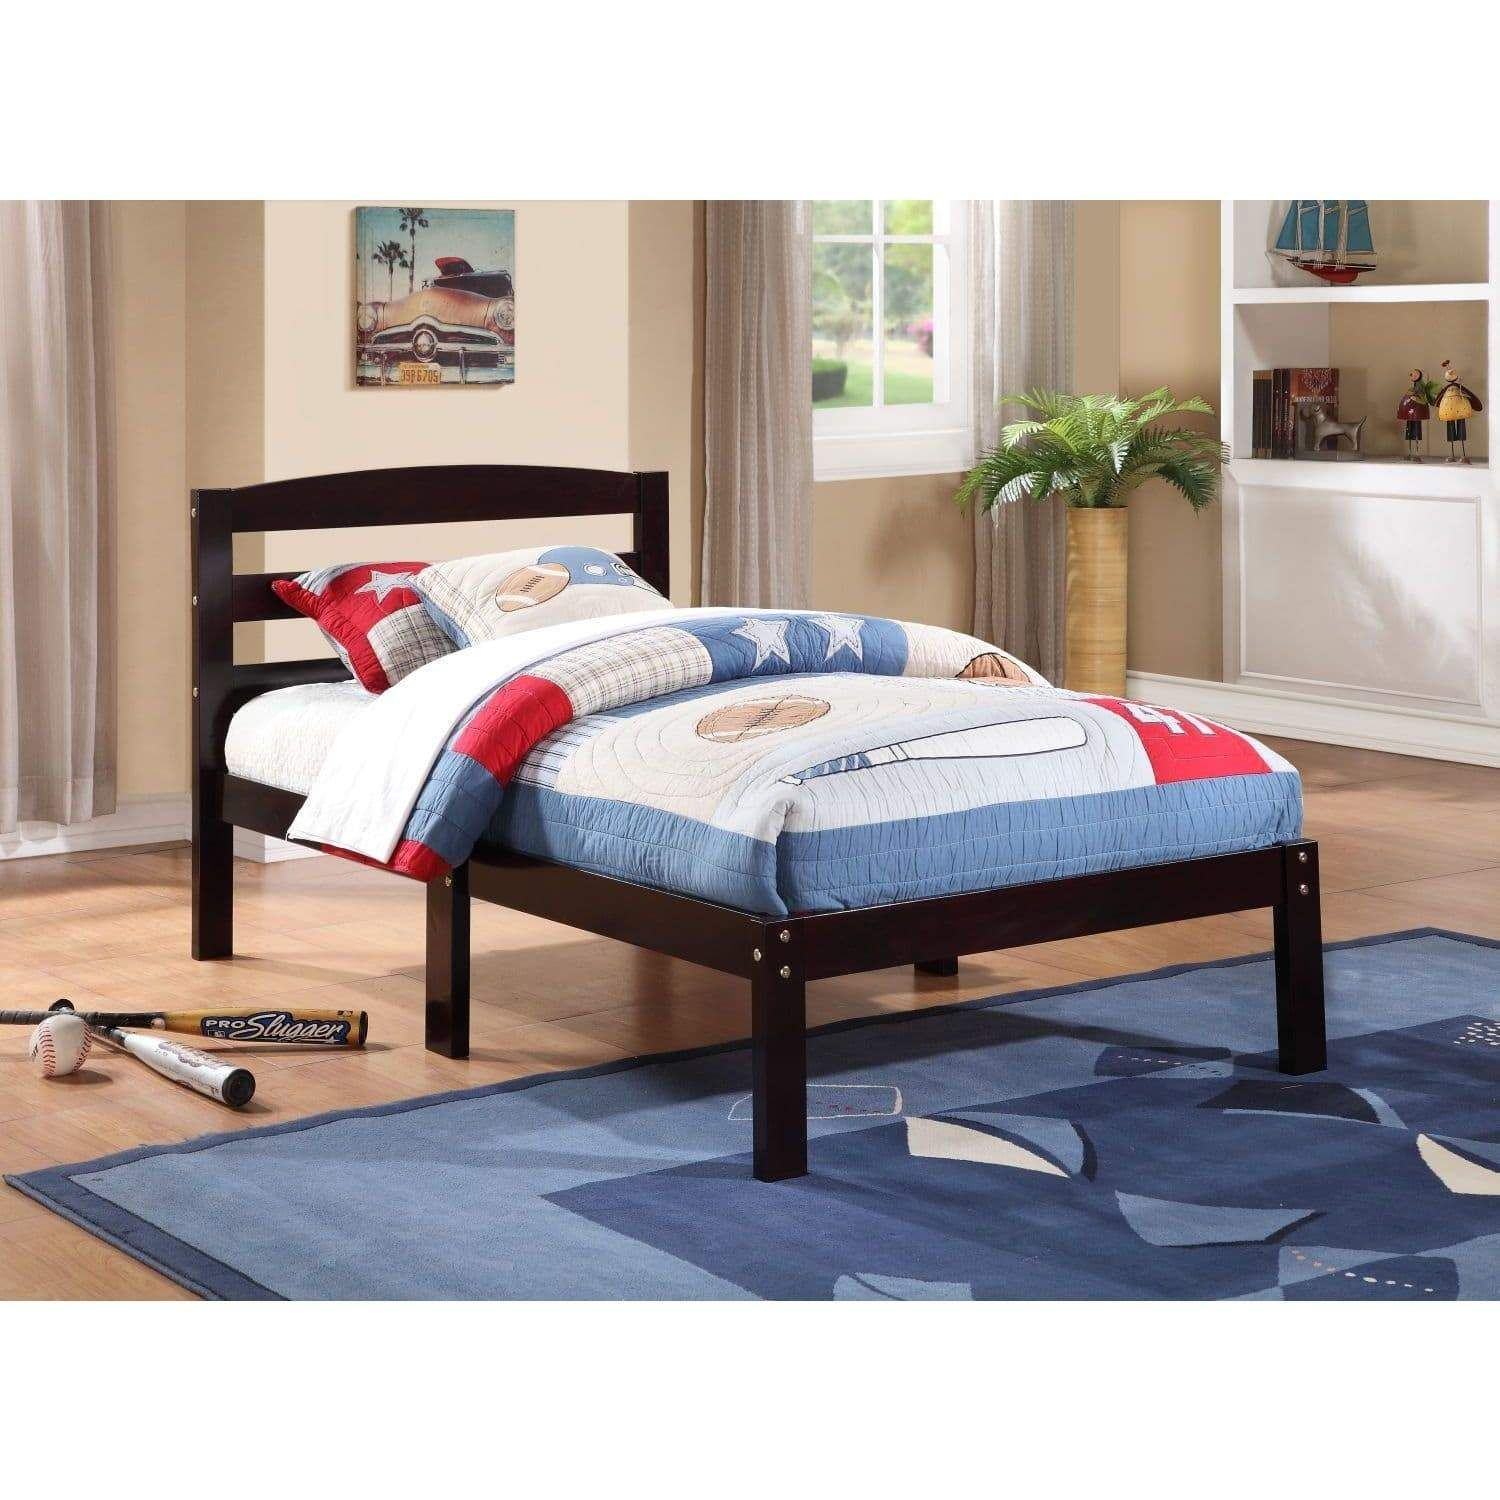 Williams Home Furnishing Twin Youth Bed Home Furnishings